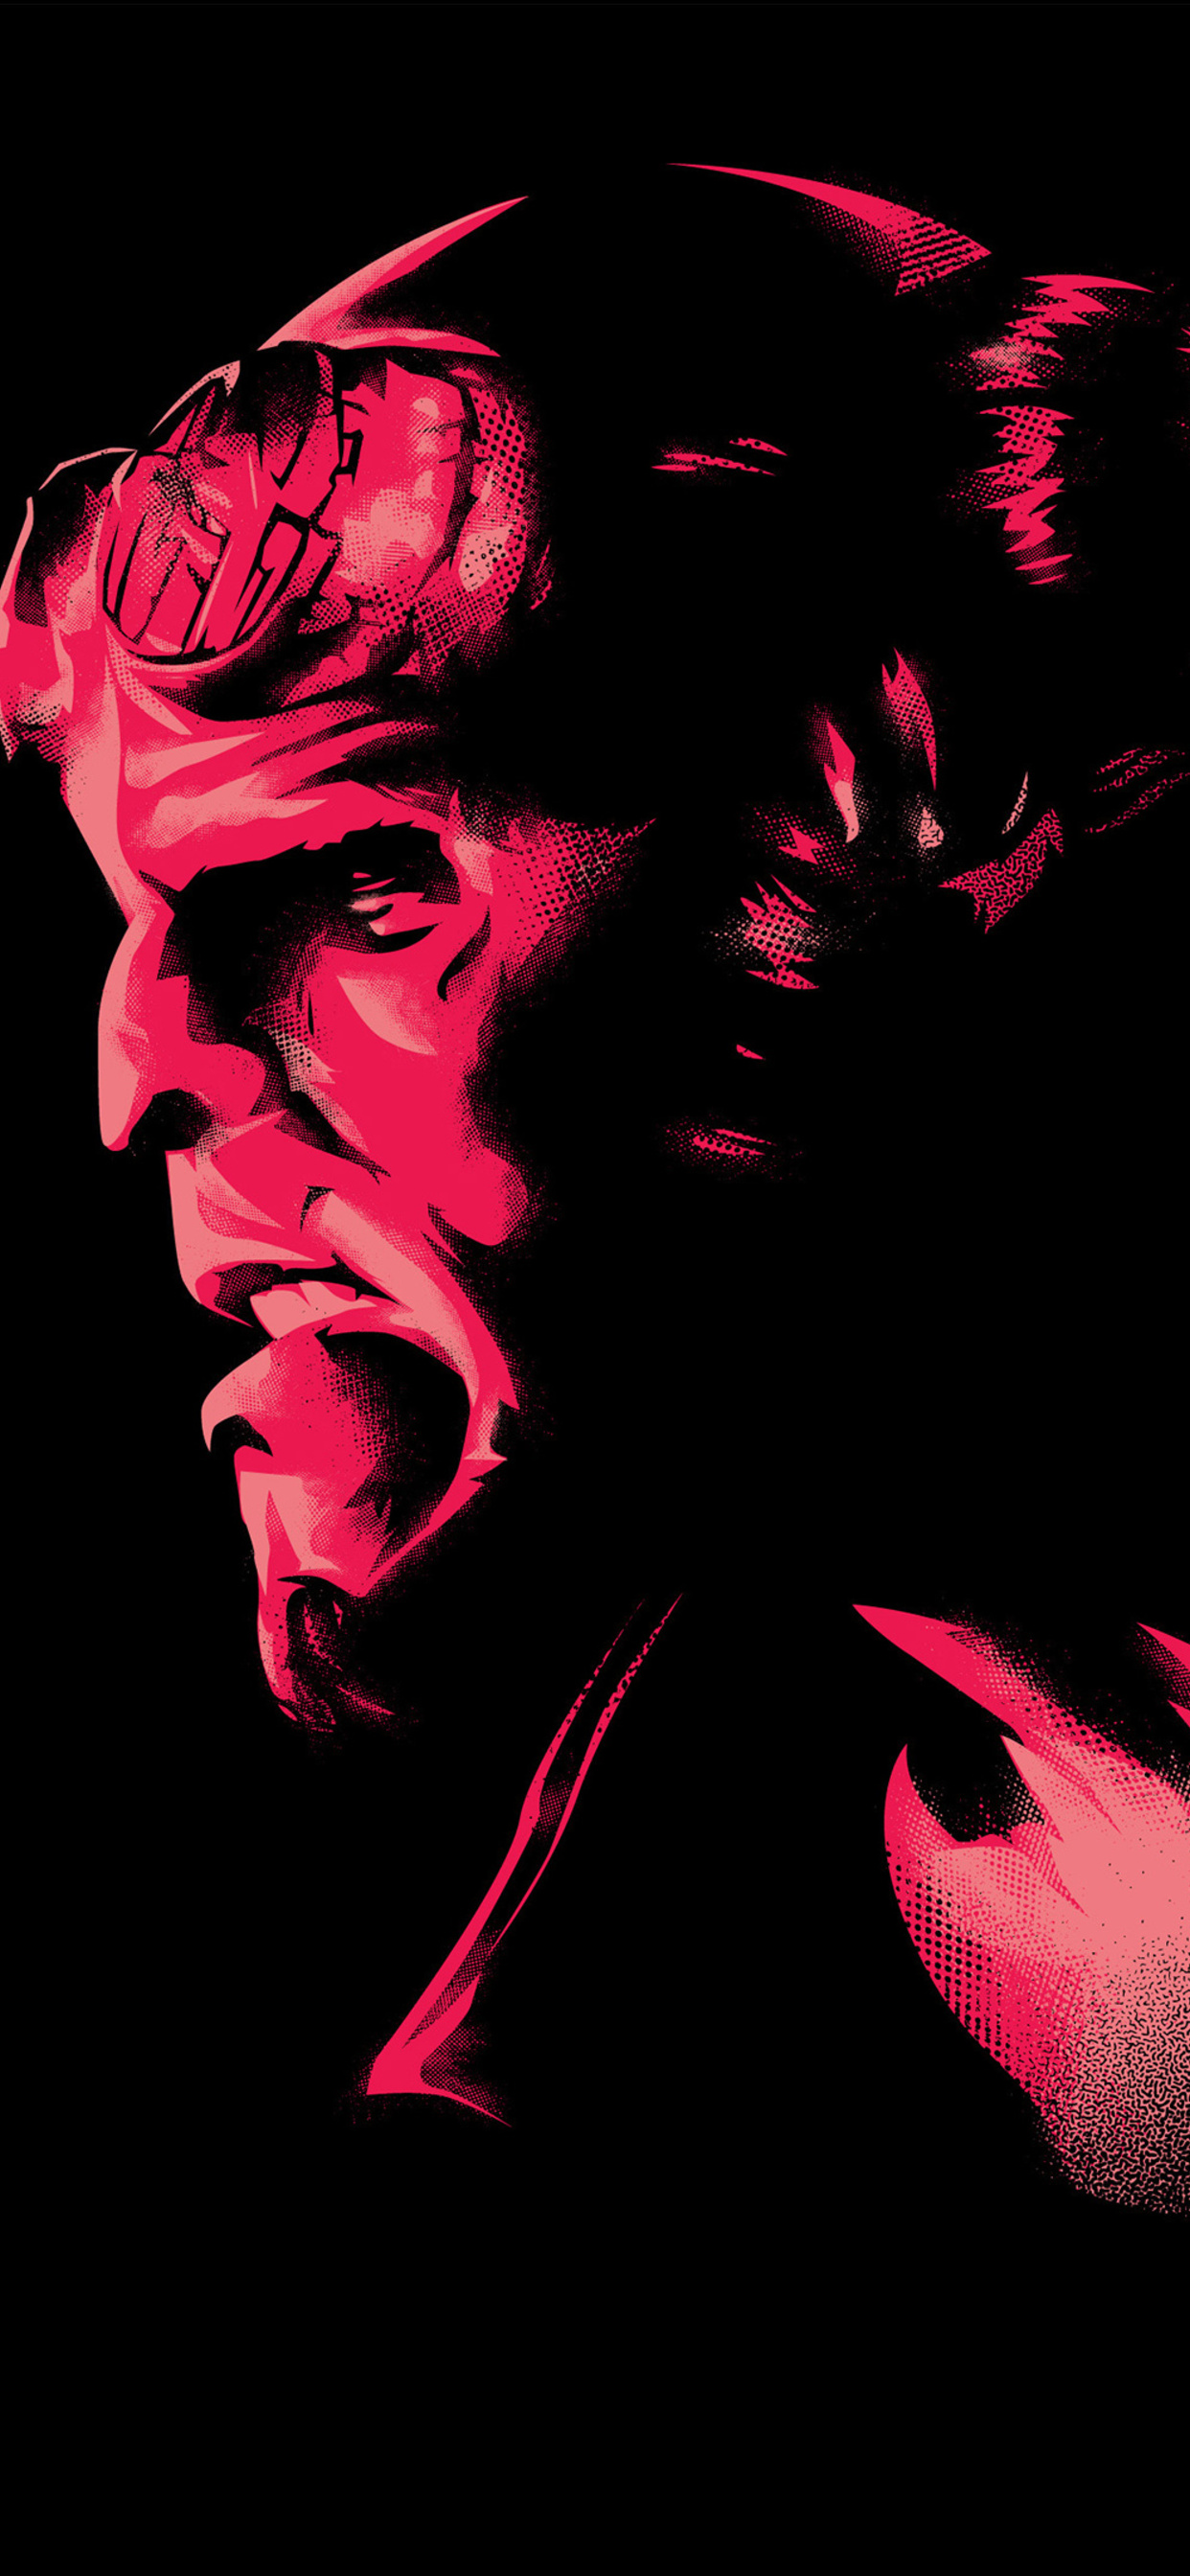 1242x2688 Hellboy Artwork 4k Iphone Xs Max Hd 4k Wallpapers Images